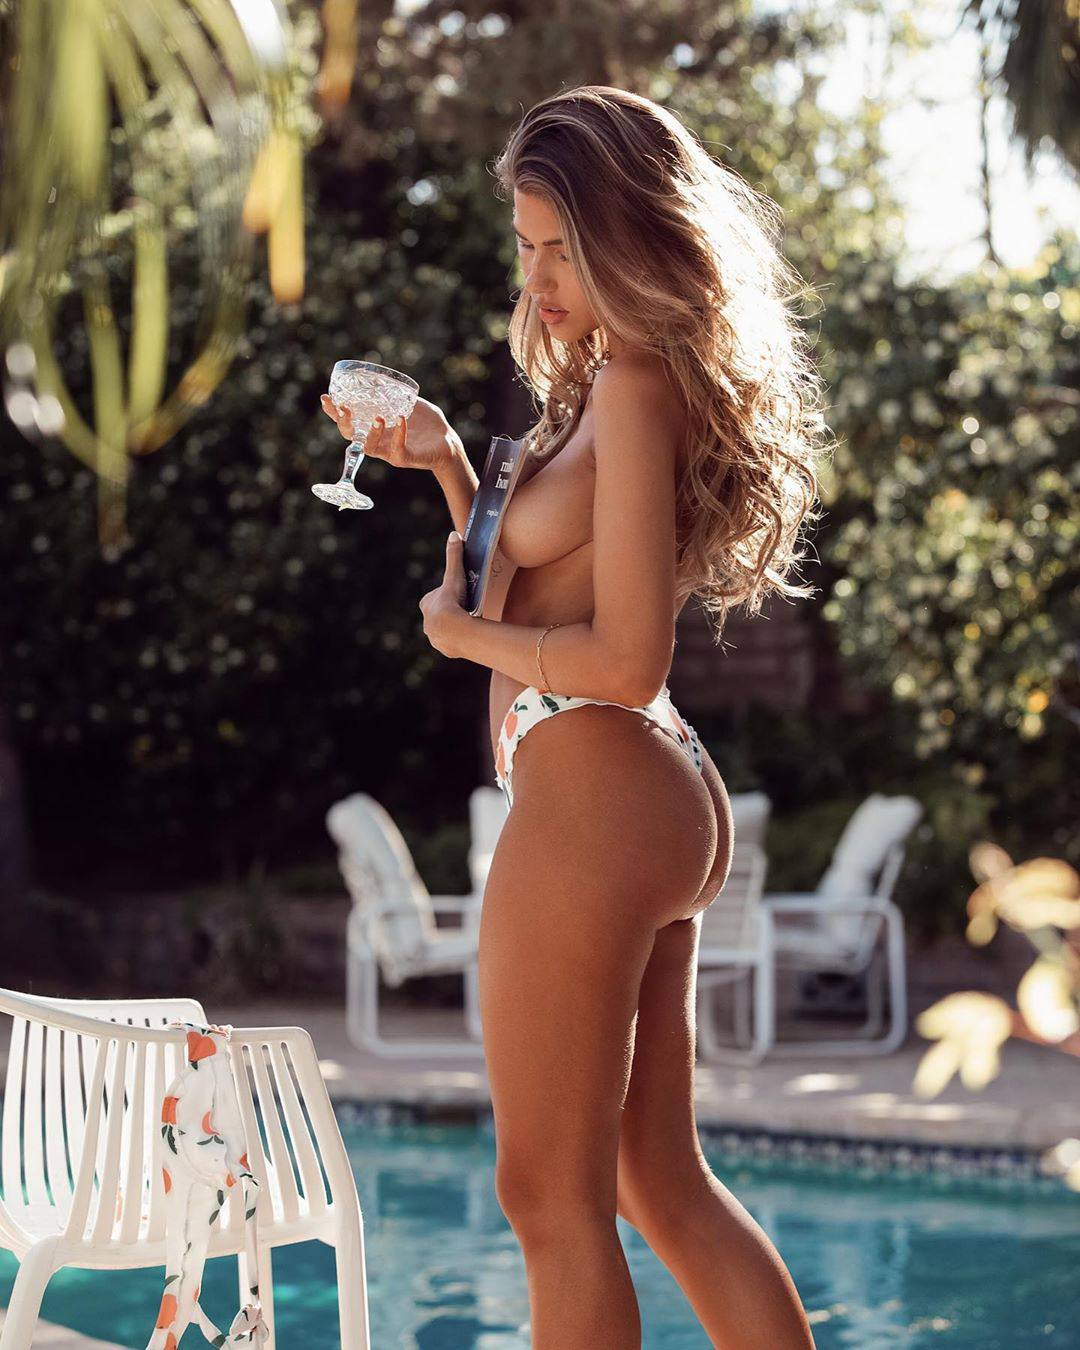 Kara Del Toro – Fantastic Boobs And Ass In Sexy Topless Photoshoot 0003